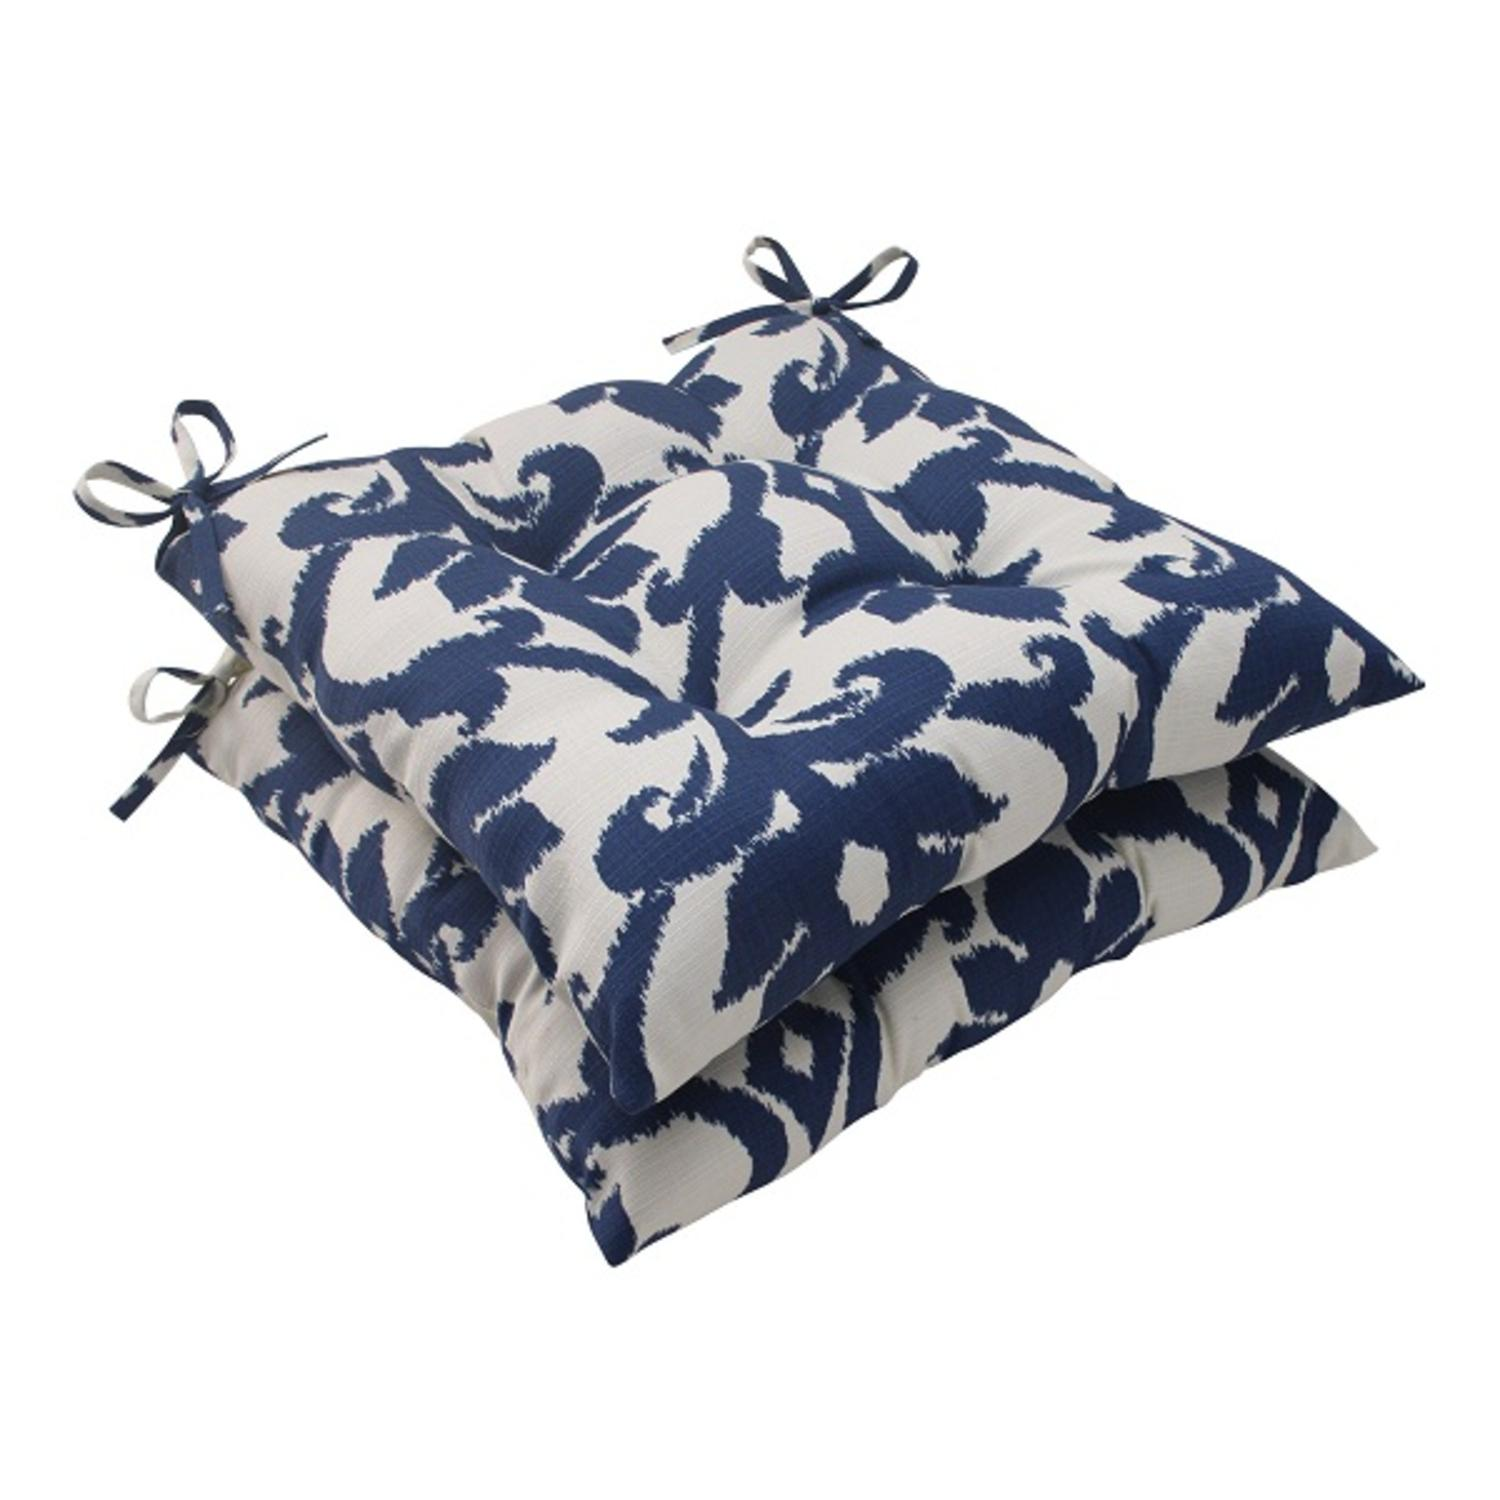 Set of 2 Victorian Navy Blue Outdoor Patio Tufted Seat Cushions with Ties 19""